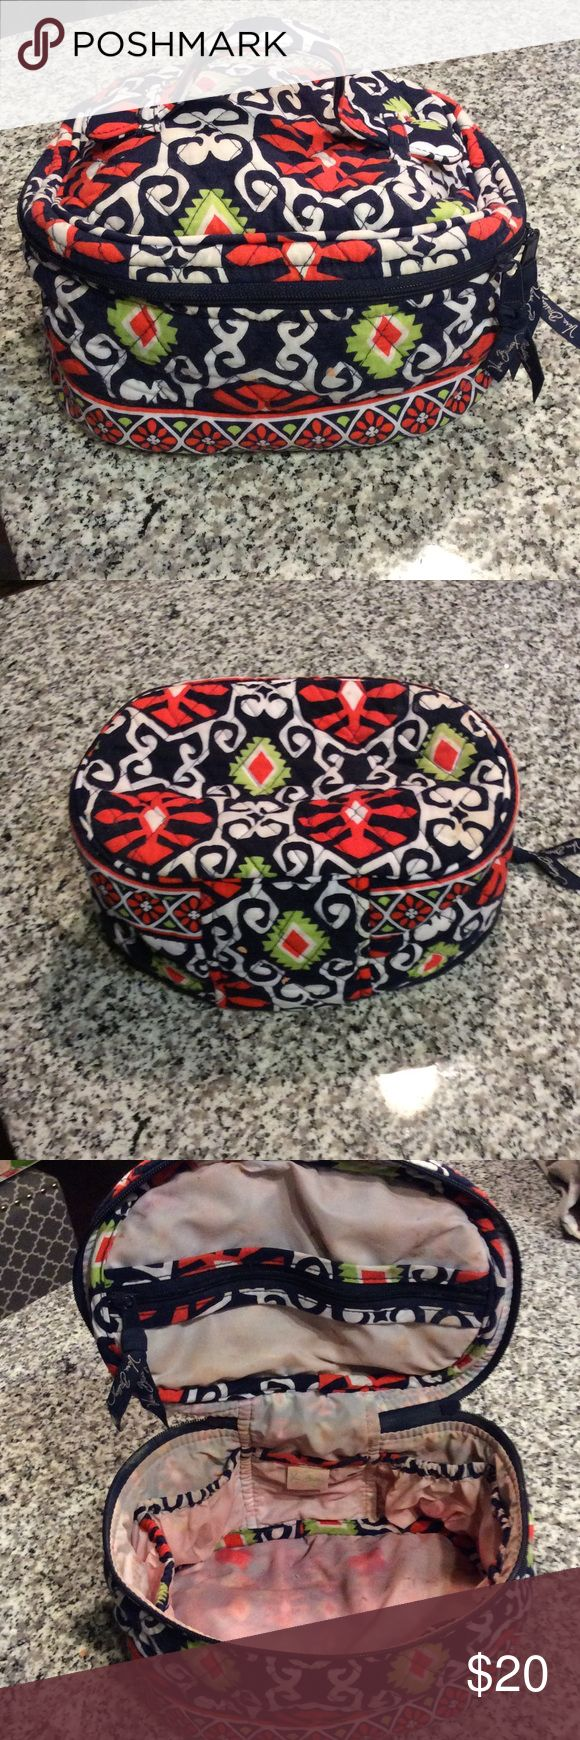 Vera Bradley large makeup case! Outside of bag is like new! Inside does have makeup marks, can been seen in pic. English Meadow pattern ❤️ Vera Bradley Makeup Brushes & Tools